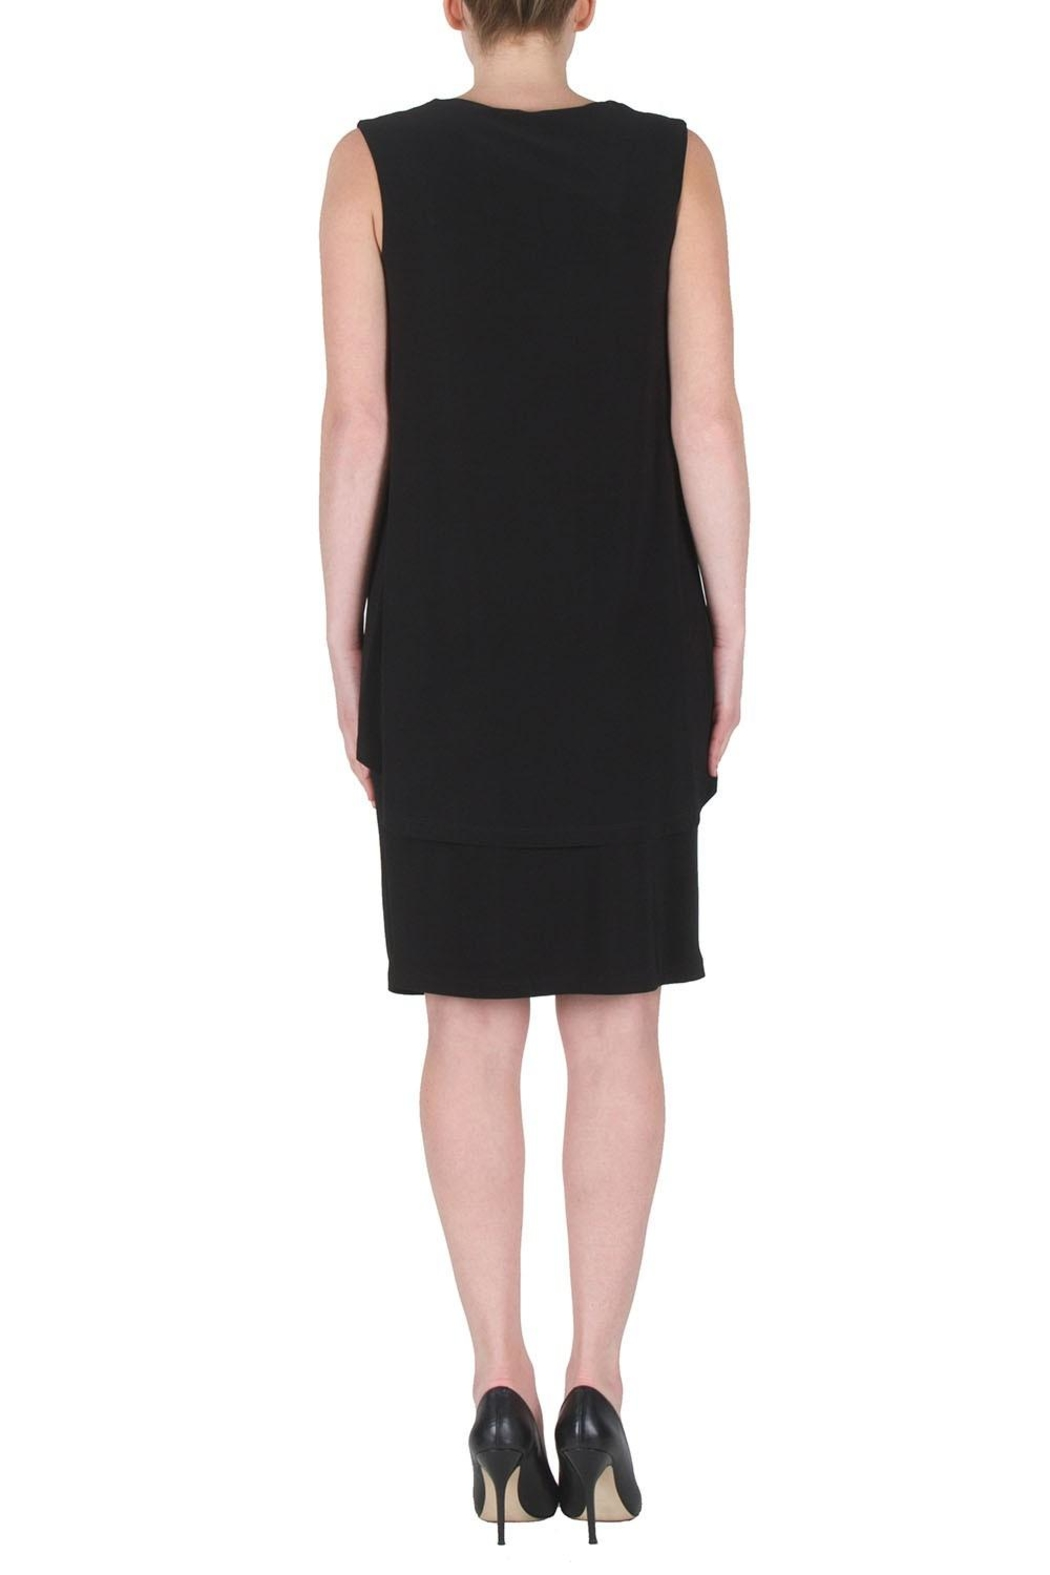 Joseph Ribkoff Draped Cocktail Dress - Side Cropped Image